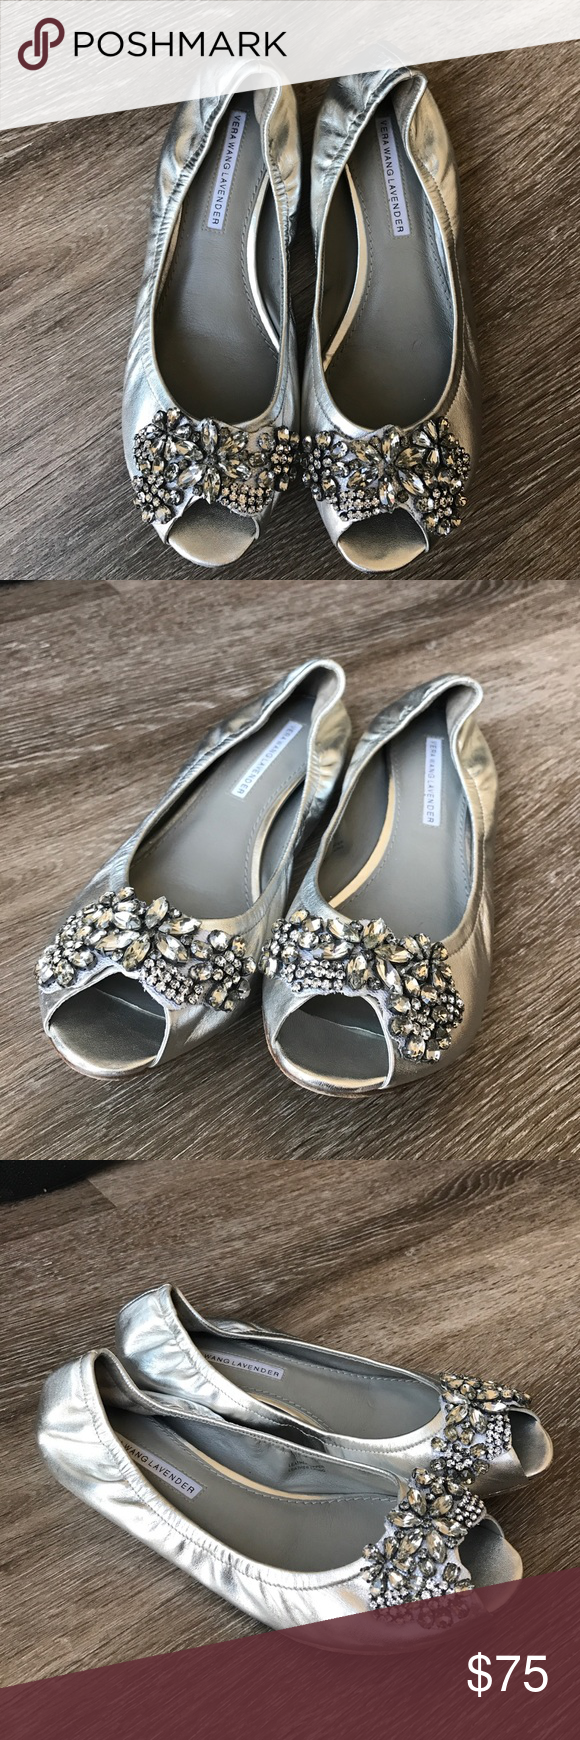 Vera Wang Lavender peep toe embellished flats Beautiful hard to find silver leather peep toe flats embellished with Swarovski crystals. Perfect for wedding shoes that are very comfortable too. Size 7.5M Vera Wang Shoes Flats & Loafers